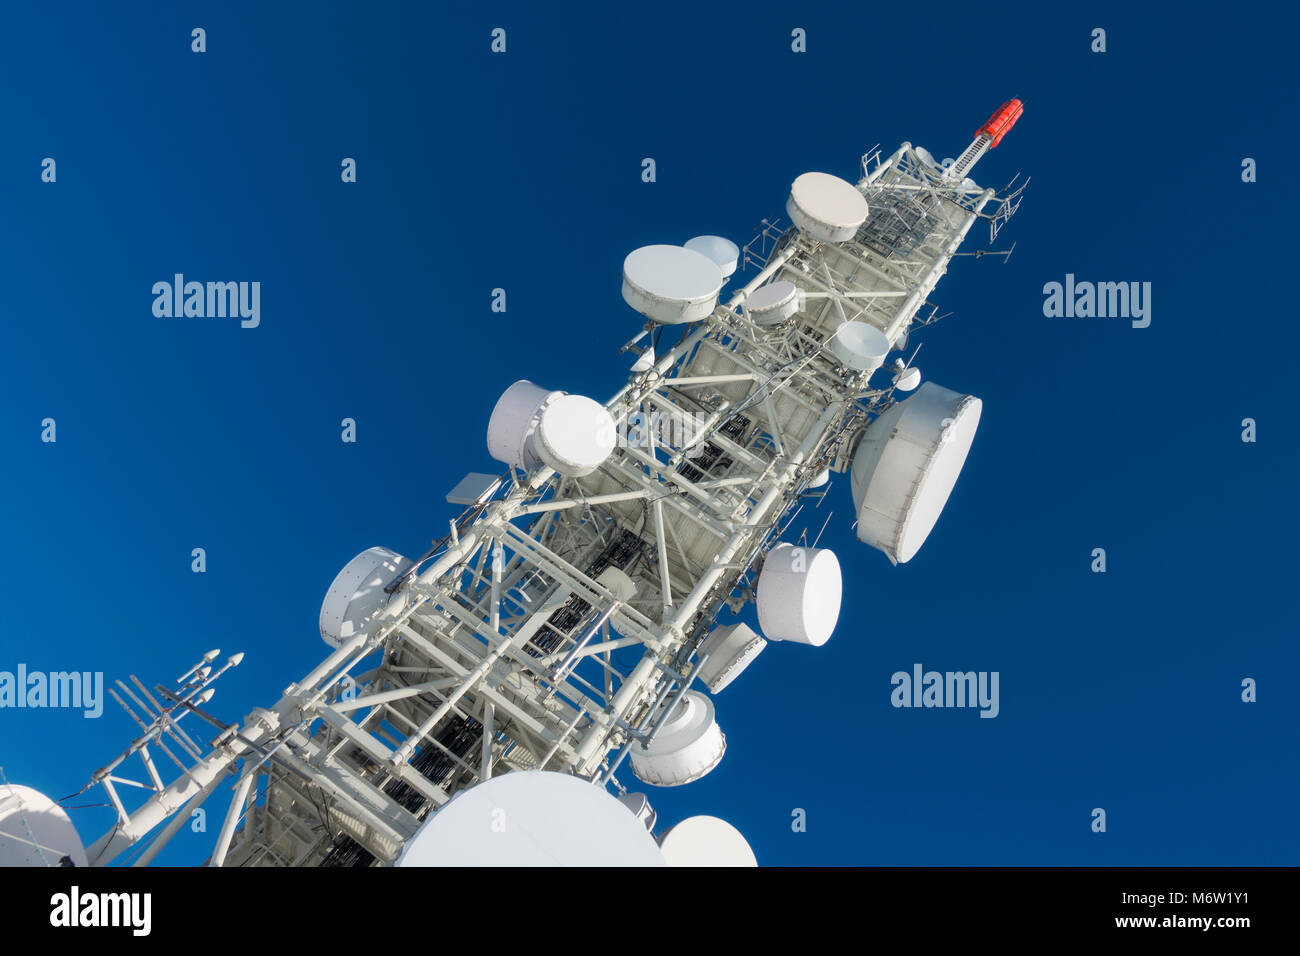 Telecommunication tower with dish antennas - Stock Image